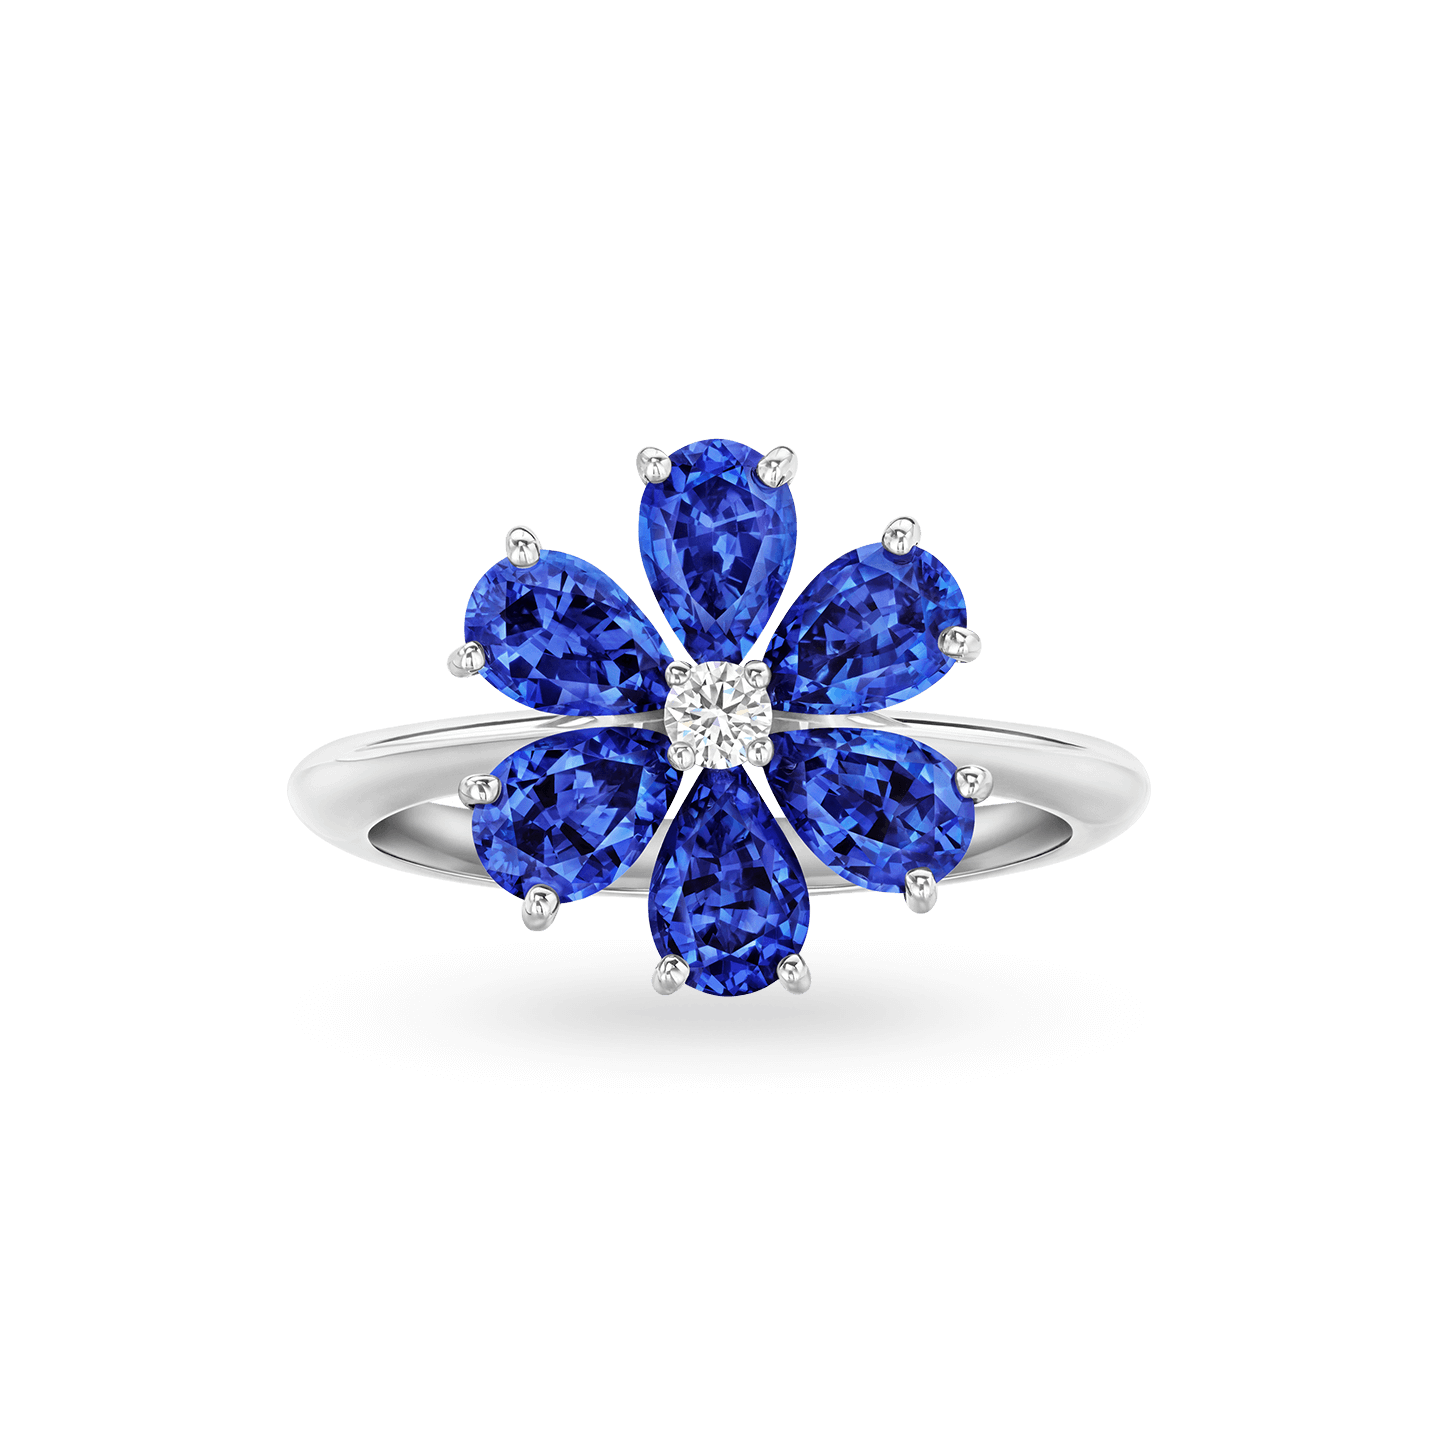 Forget-Me-Not Sapphire and Diamond Ring, Product Image 1